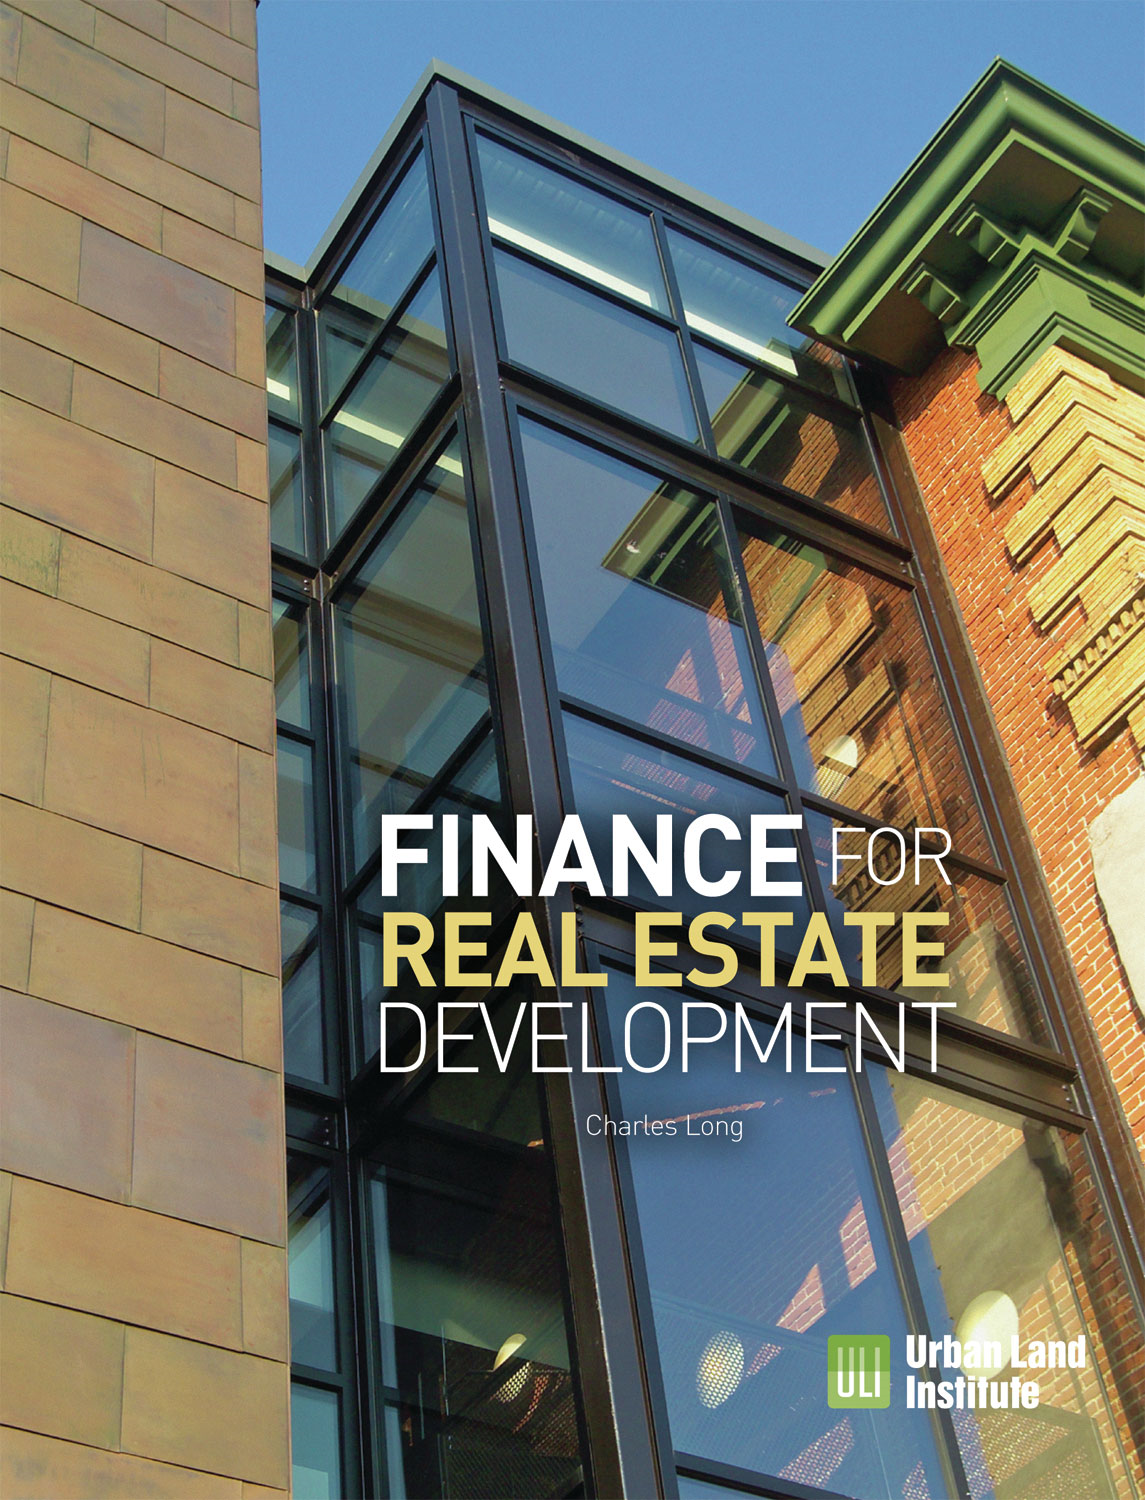 Finance for Real Estate Development